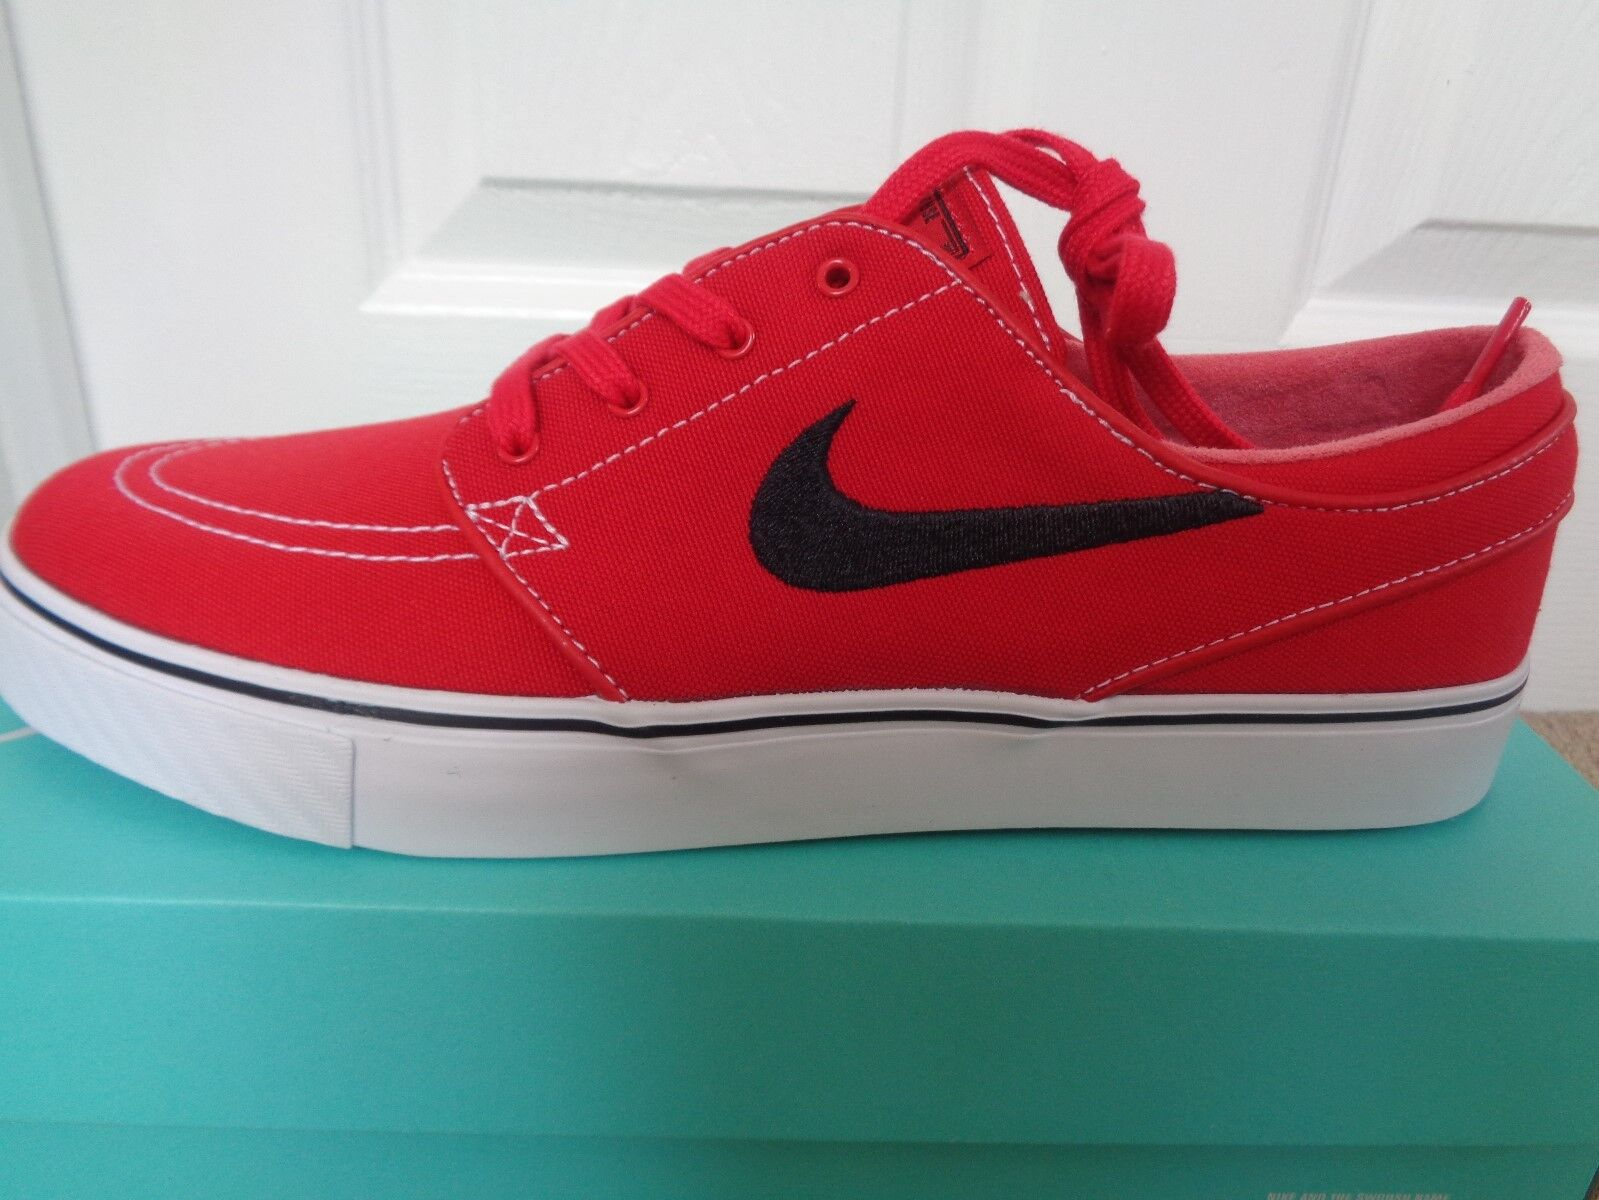 Nike Nike Nike Zoom Stefan Janoski CNVS trainers 615957 603 uk 8.5 eu 43 us 9.5 NEW+ BOX a2a227